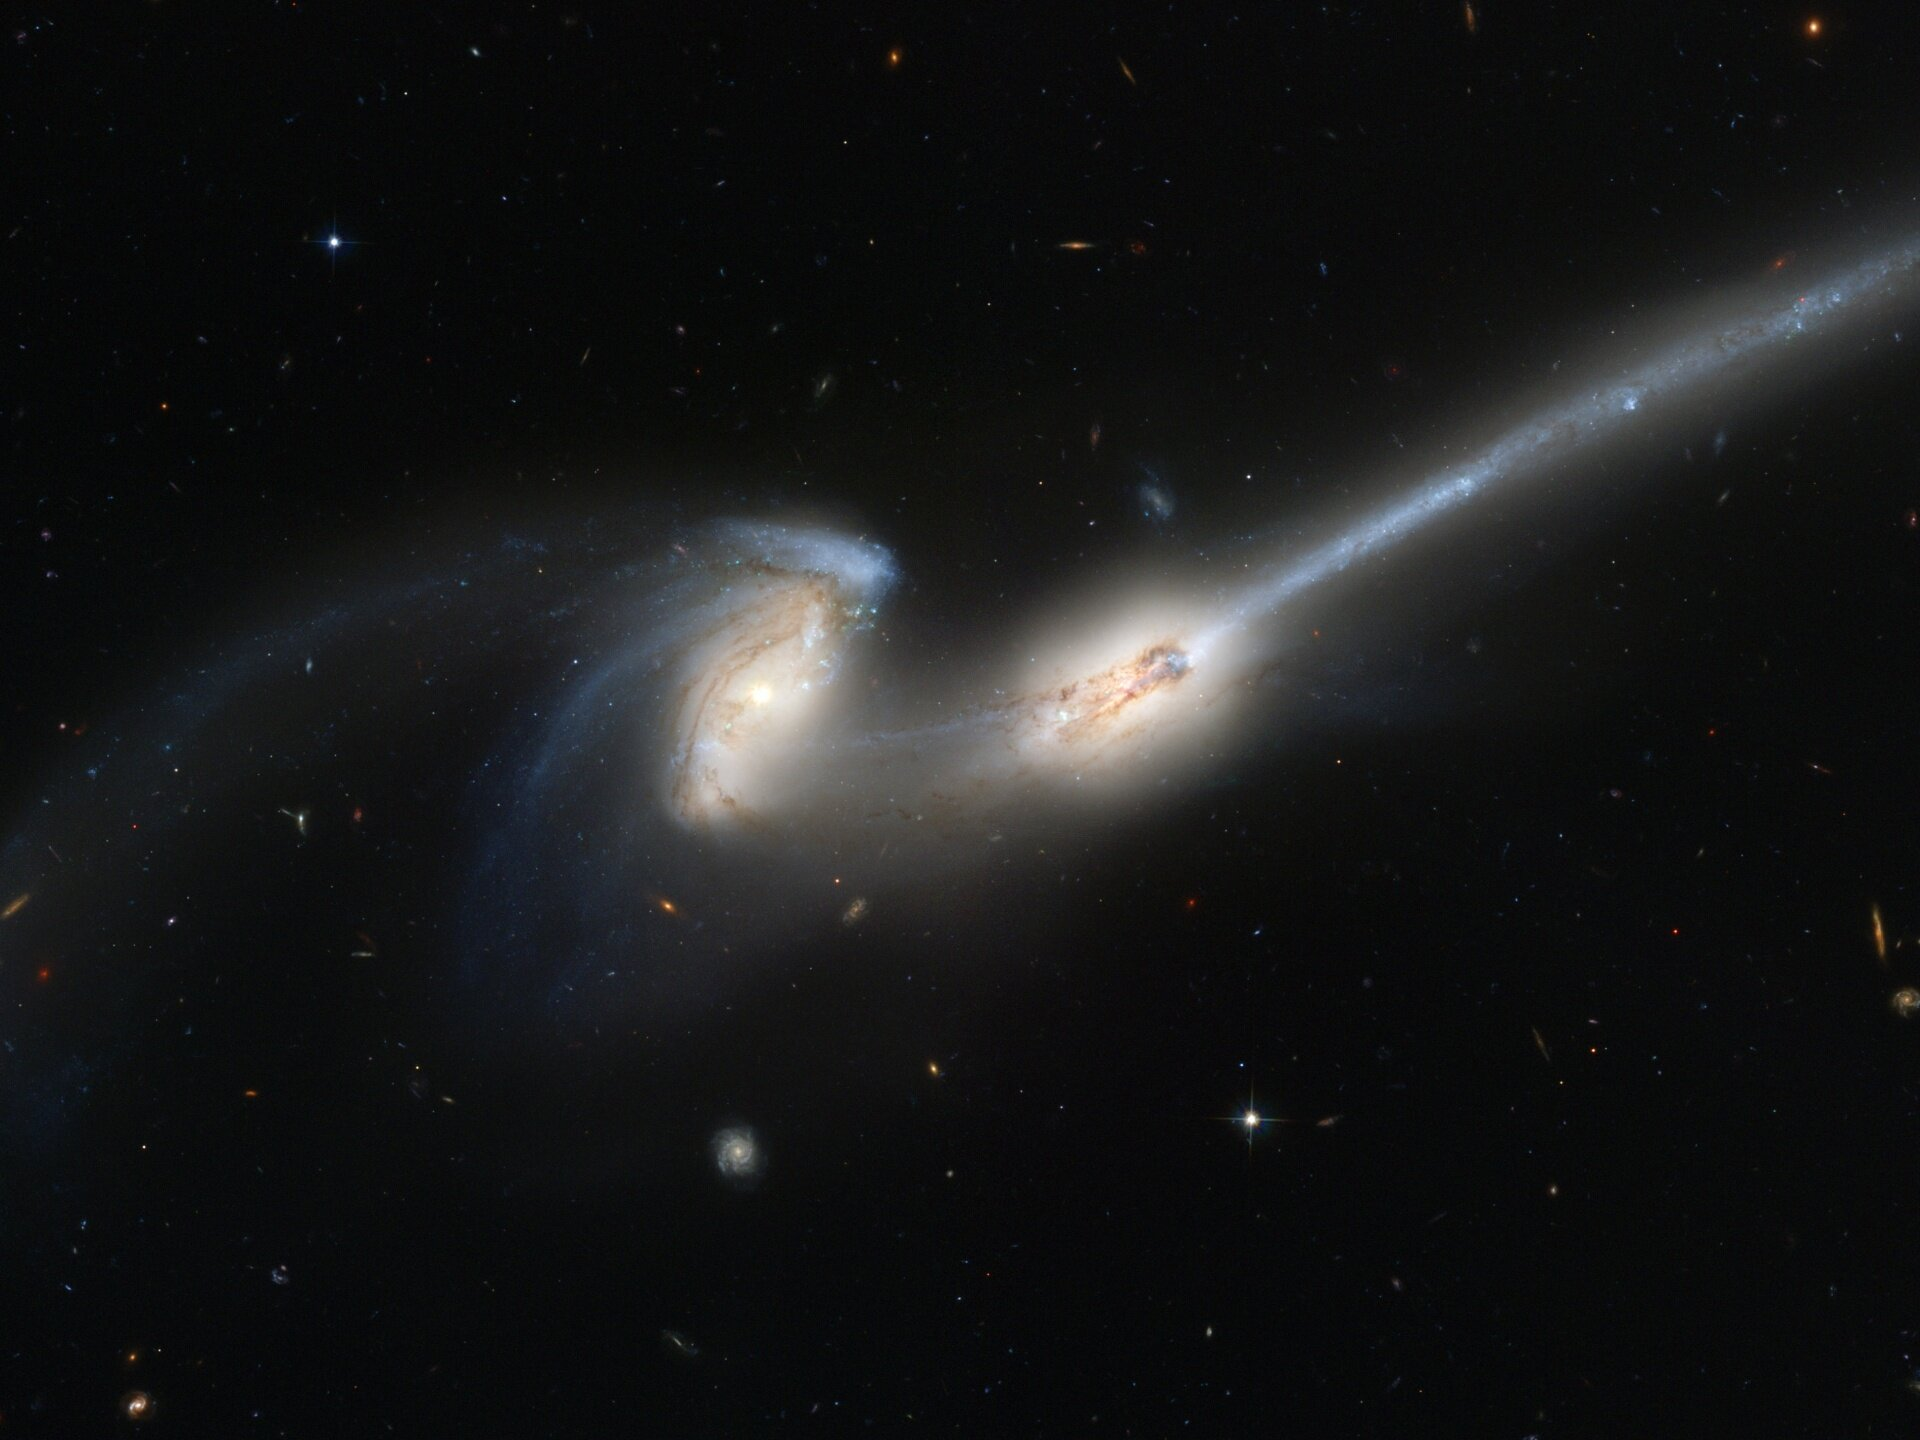 Two galaxies merging. (Image: Hubble Space Telescope)